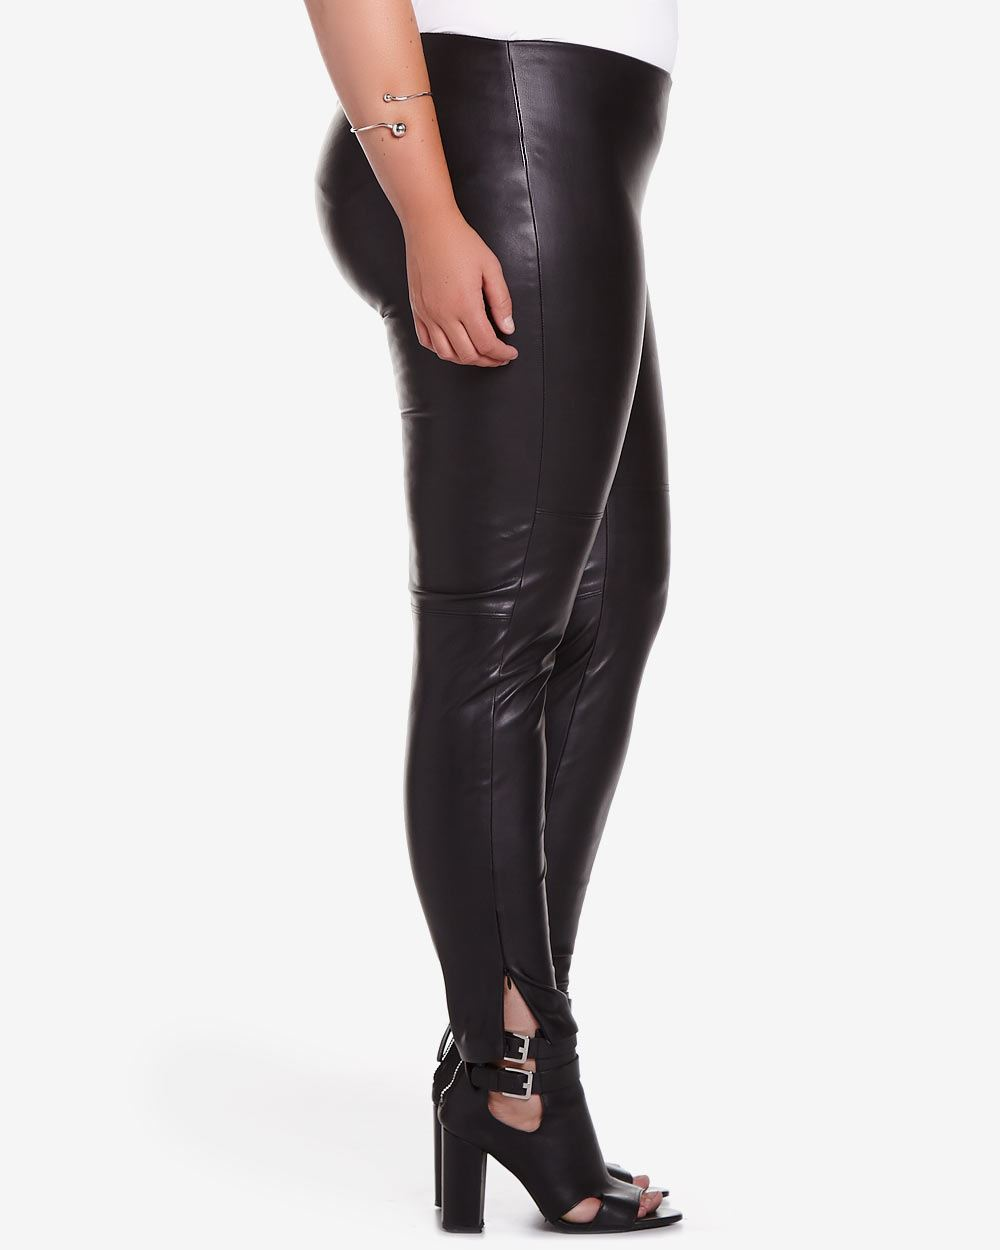 These are our gorgeous plus size Shiny Faux Leather Leggings and they are simply a great fitting, feeling and looking wet look legging. The leather material is a very soft and ultra comfortable faux leather fabric that layers your legs in stylish black leather style.